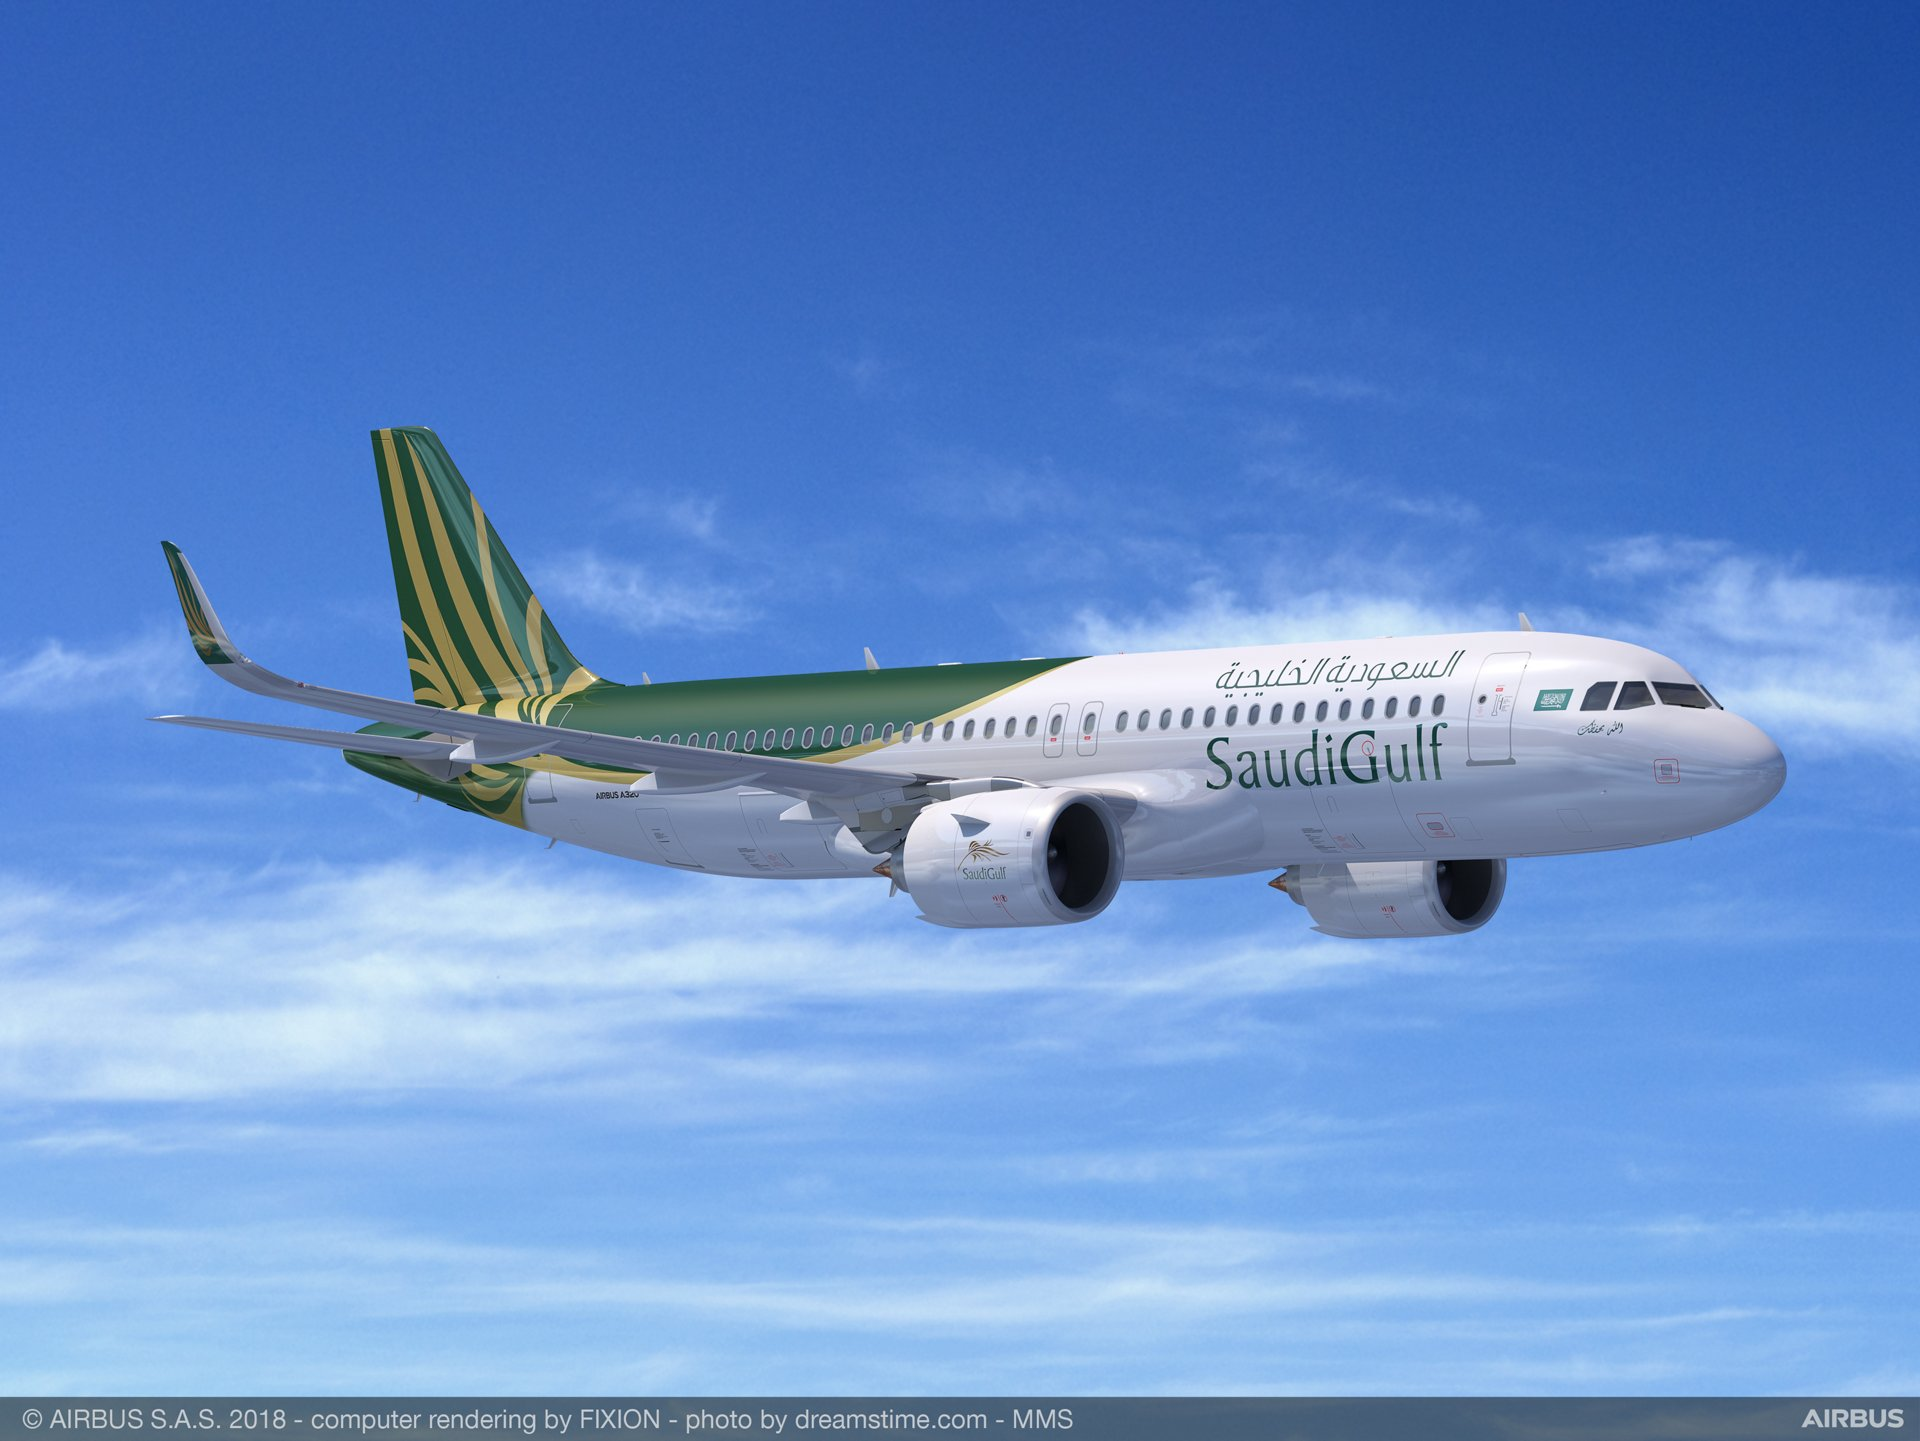 SaudiGulf Airlines will expand its fleet of A320 aircraft by acquiring 10 A320neo family jetliners through an agreement announced at the 2018 Bahrain International Airshow